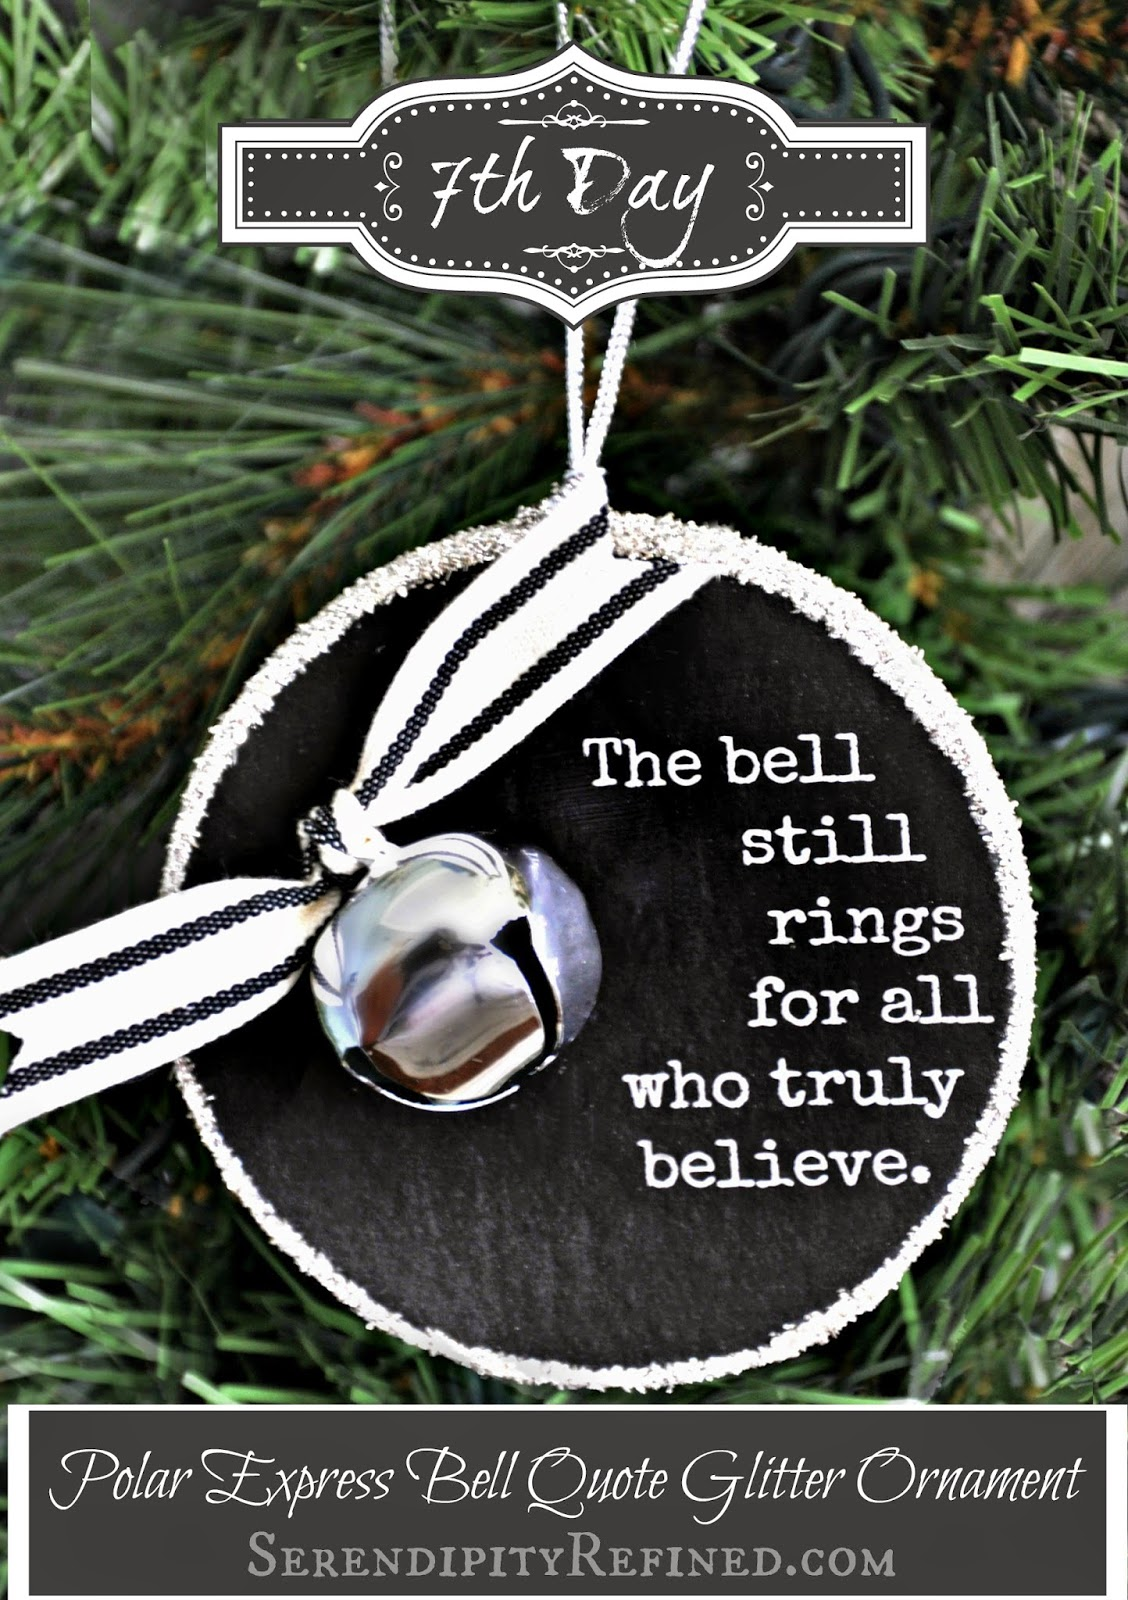 Serendipity Refined Blog: Polar Express Bell Quote Ornament ...